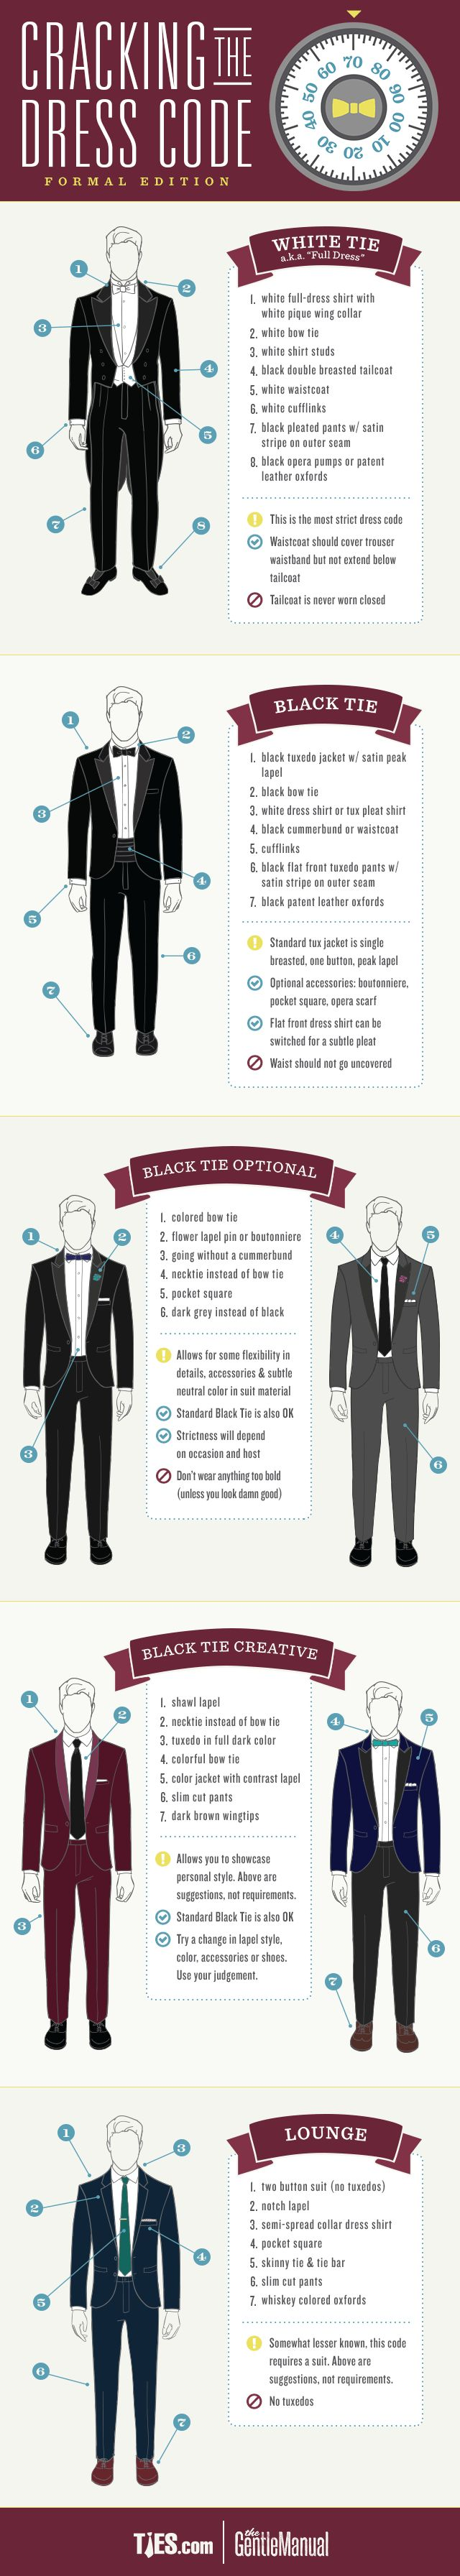 Cracking The Dress Code, Formal Edition: An Infographic